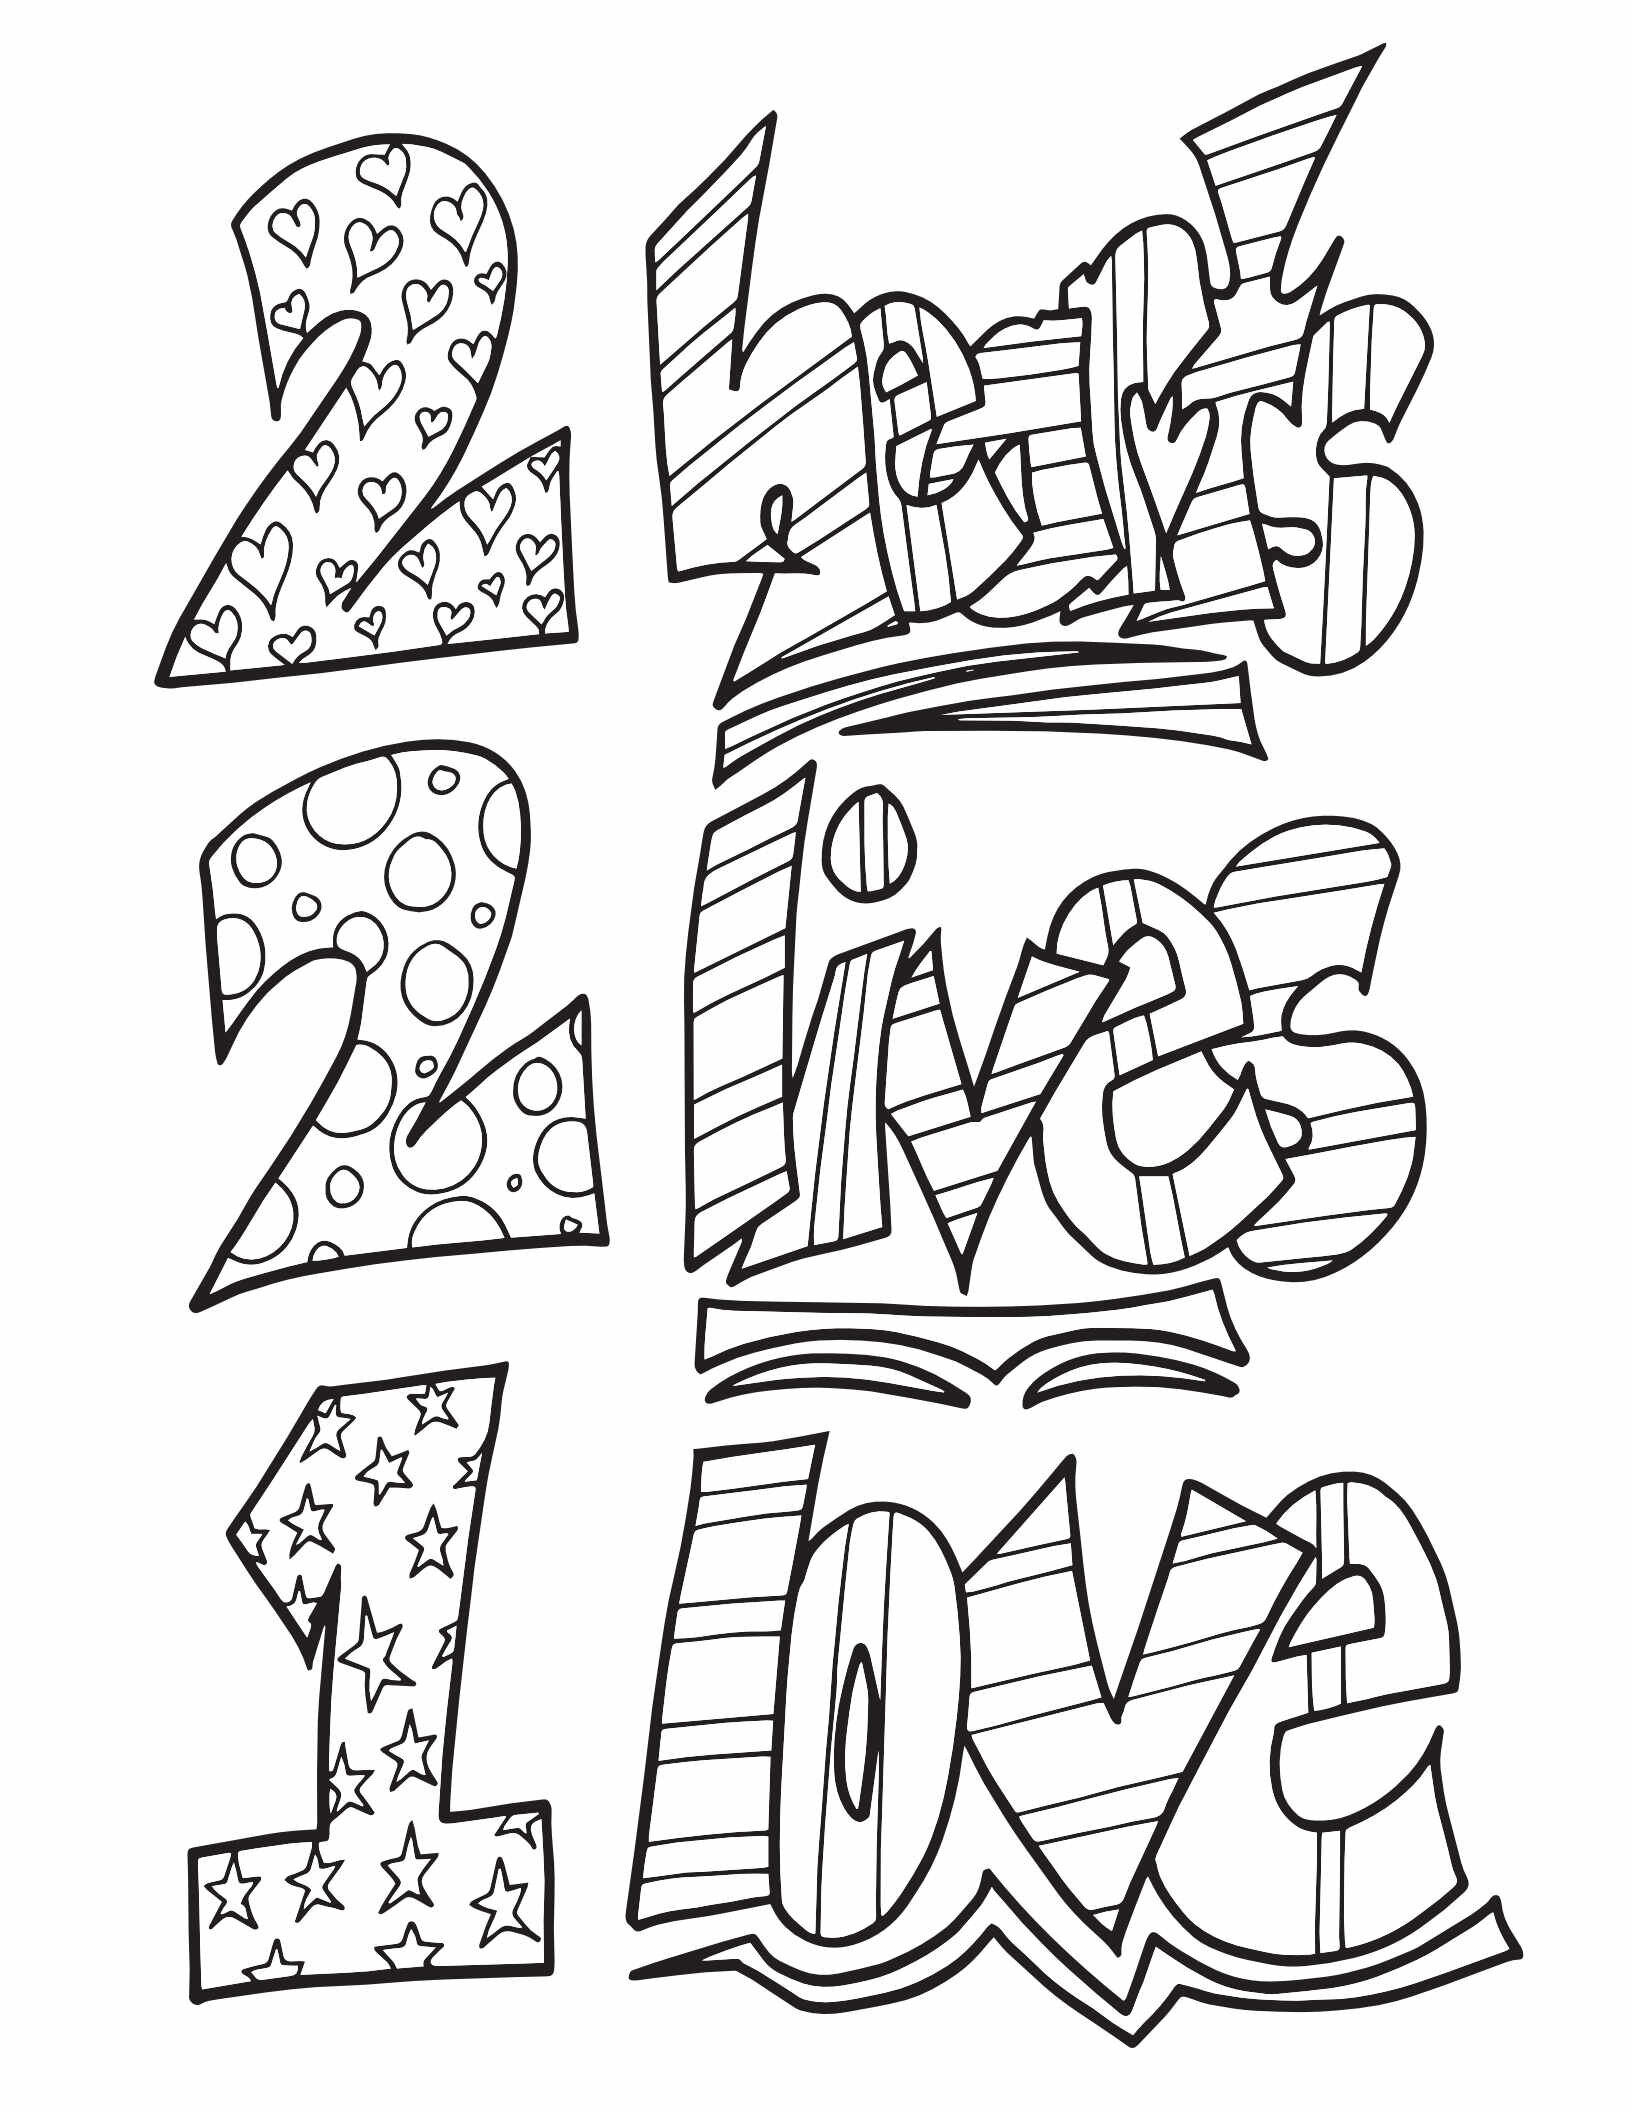 2 Hearts 2 Lives 1 Love Free Printable Coloring Page Stevie